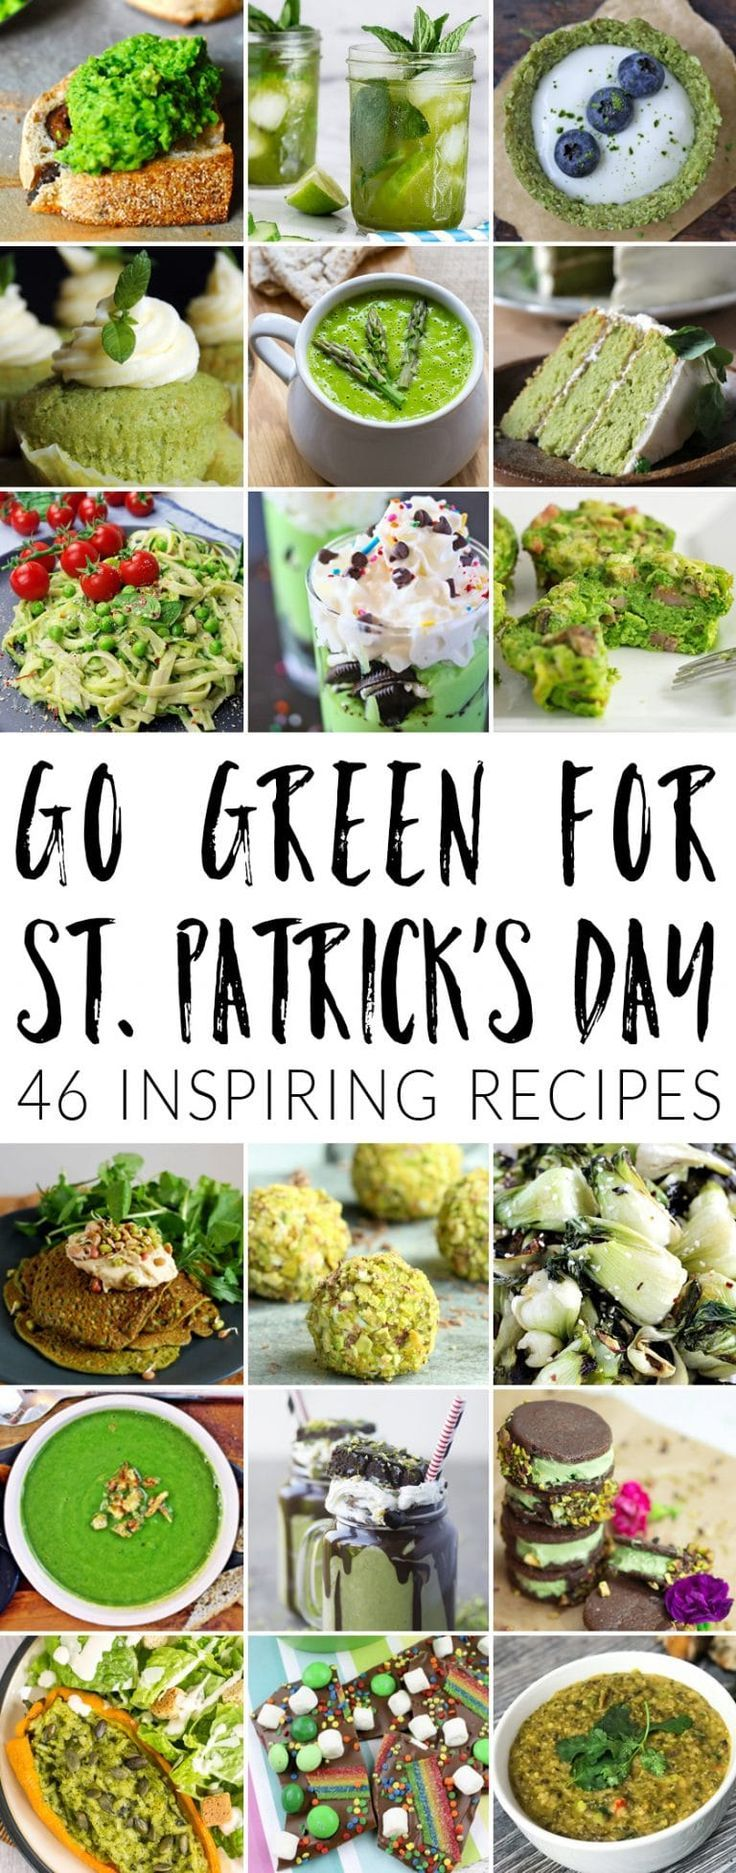 Go green for St Patrick's Day: 46 inspiring recipes